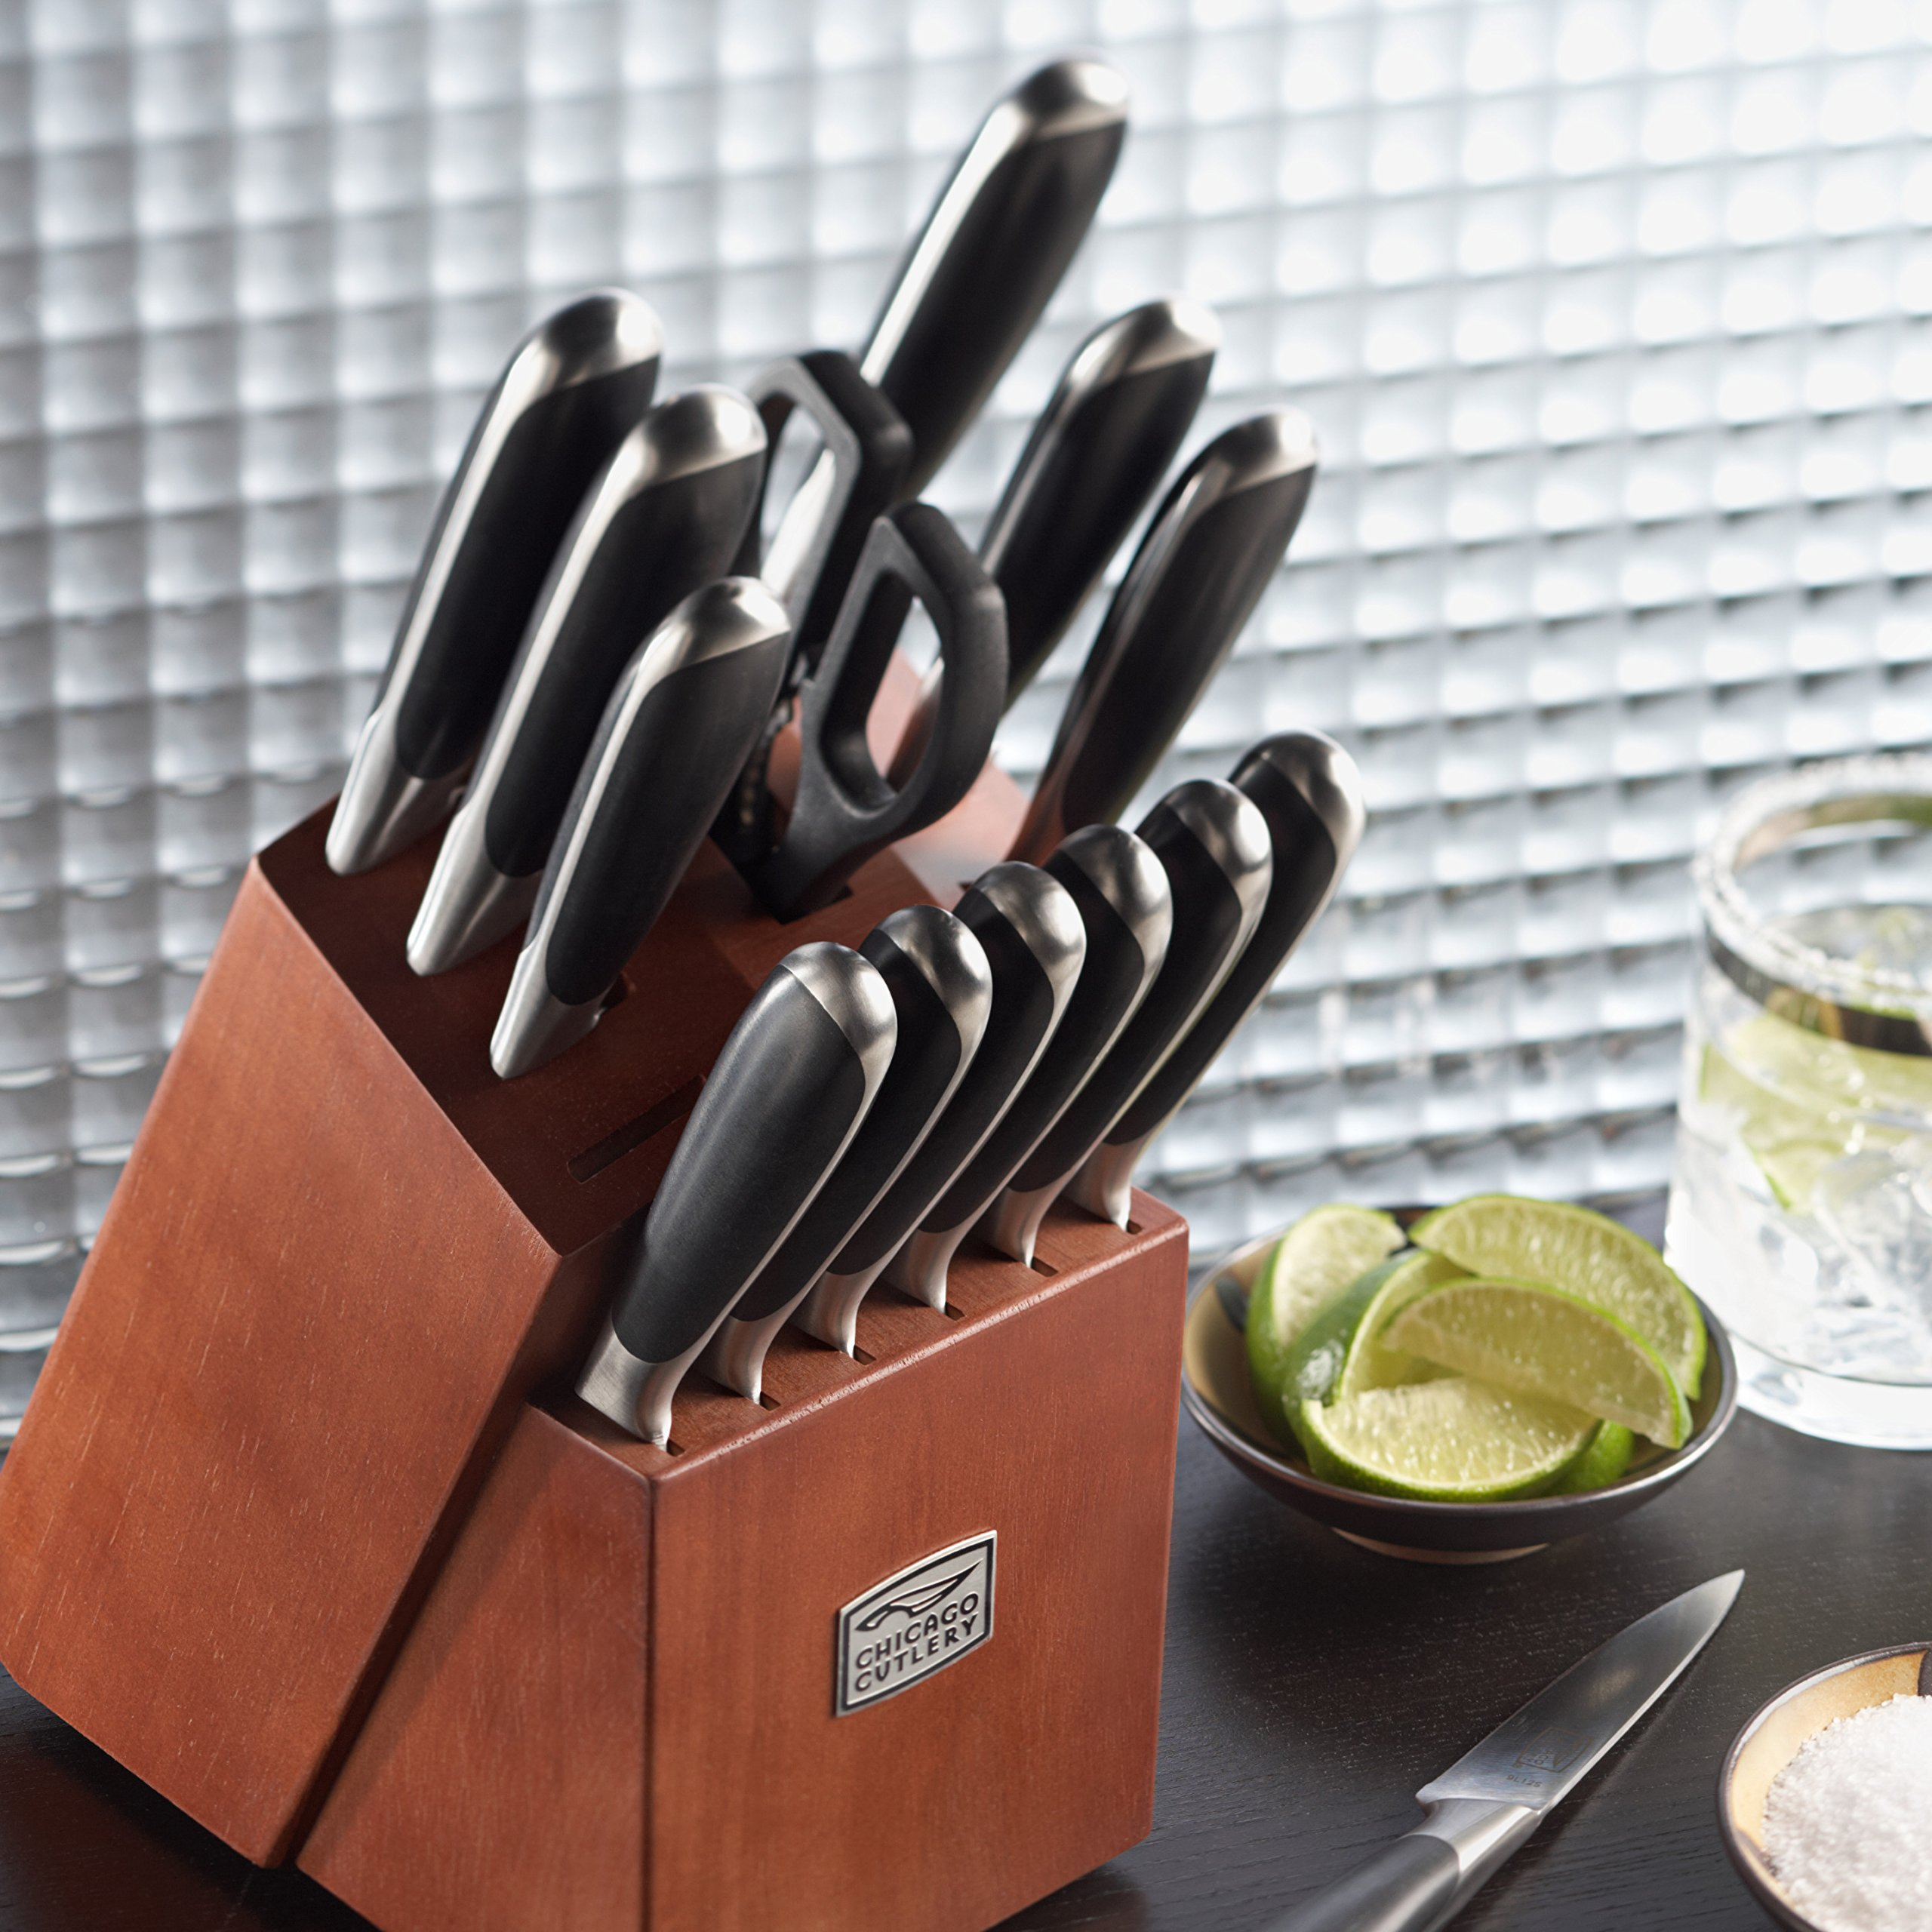 how to find the best chicago cutlery knife set reviews on the market